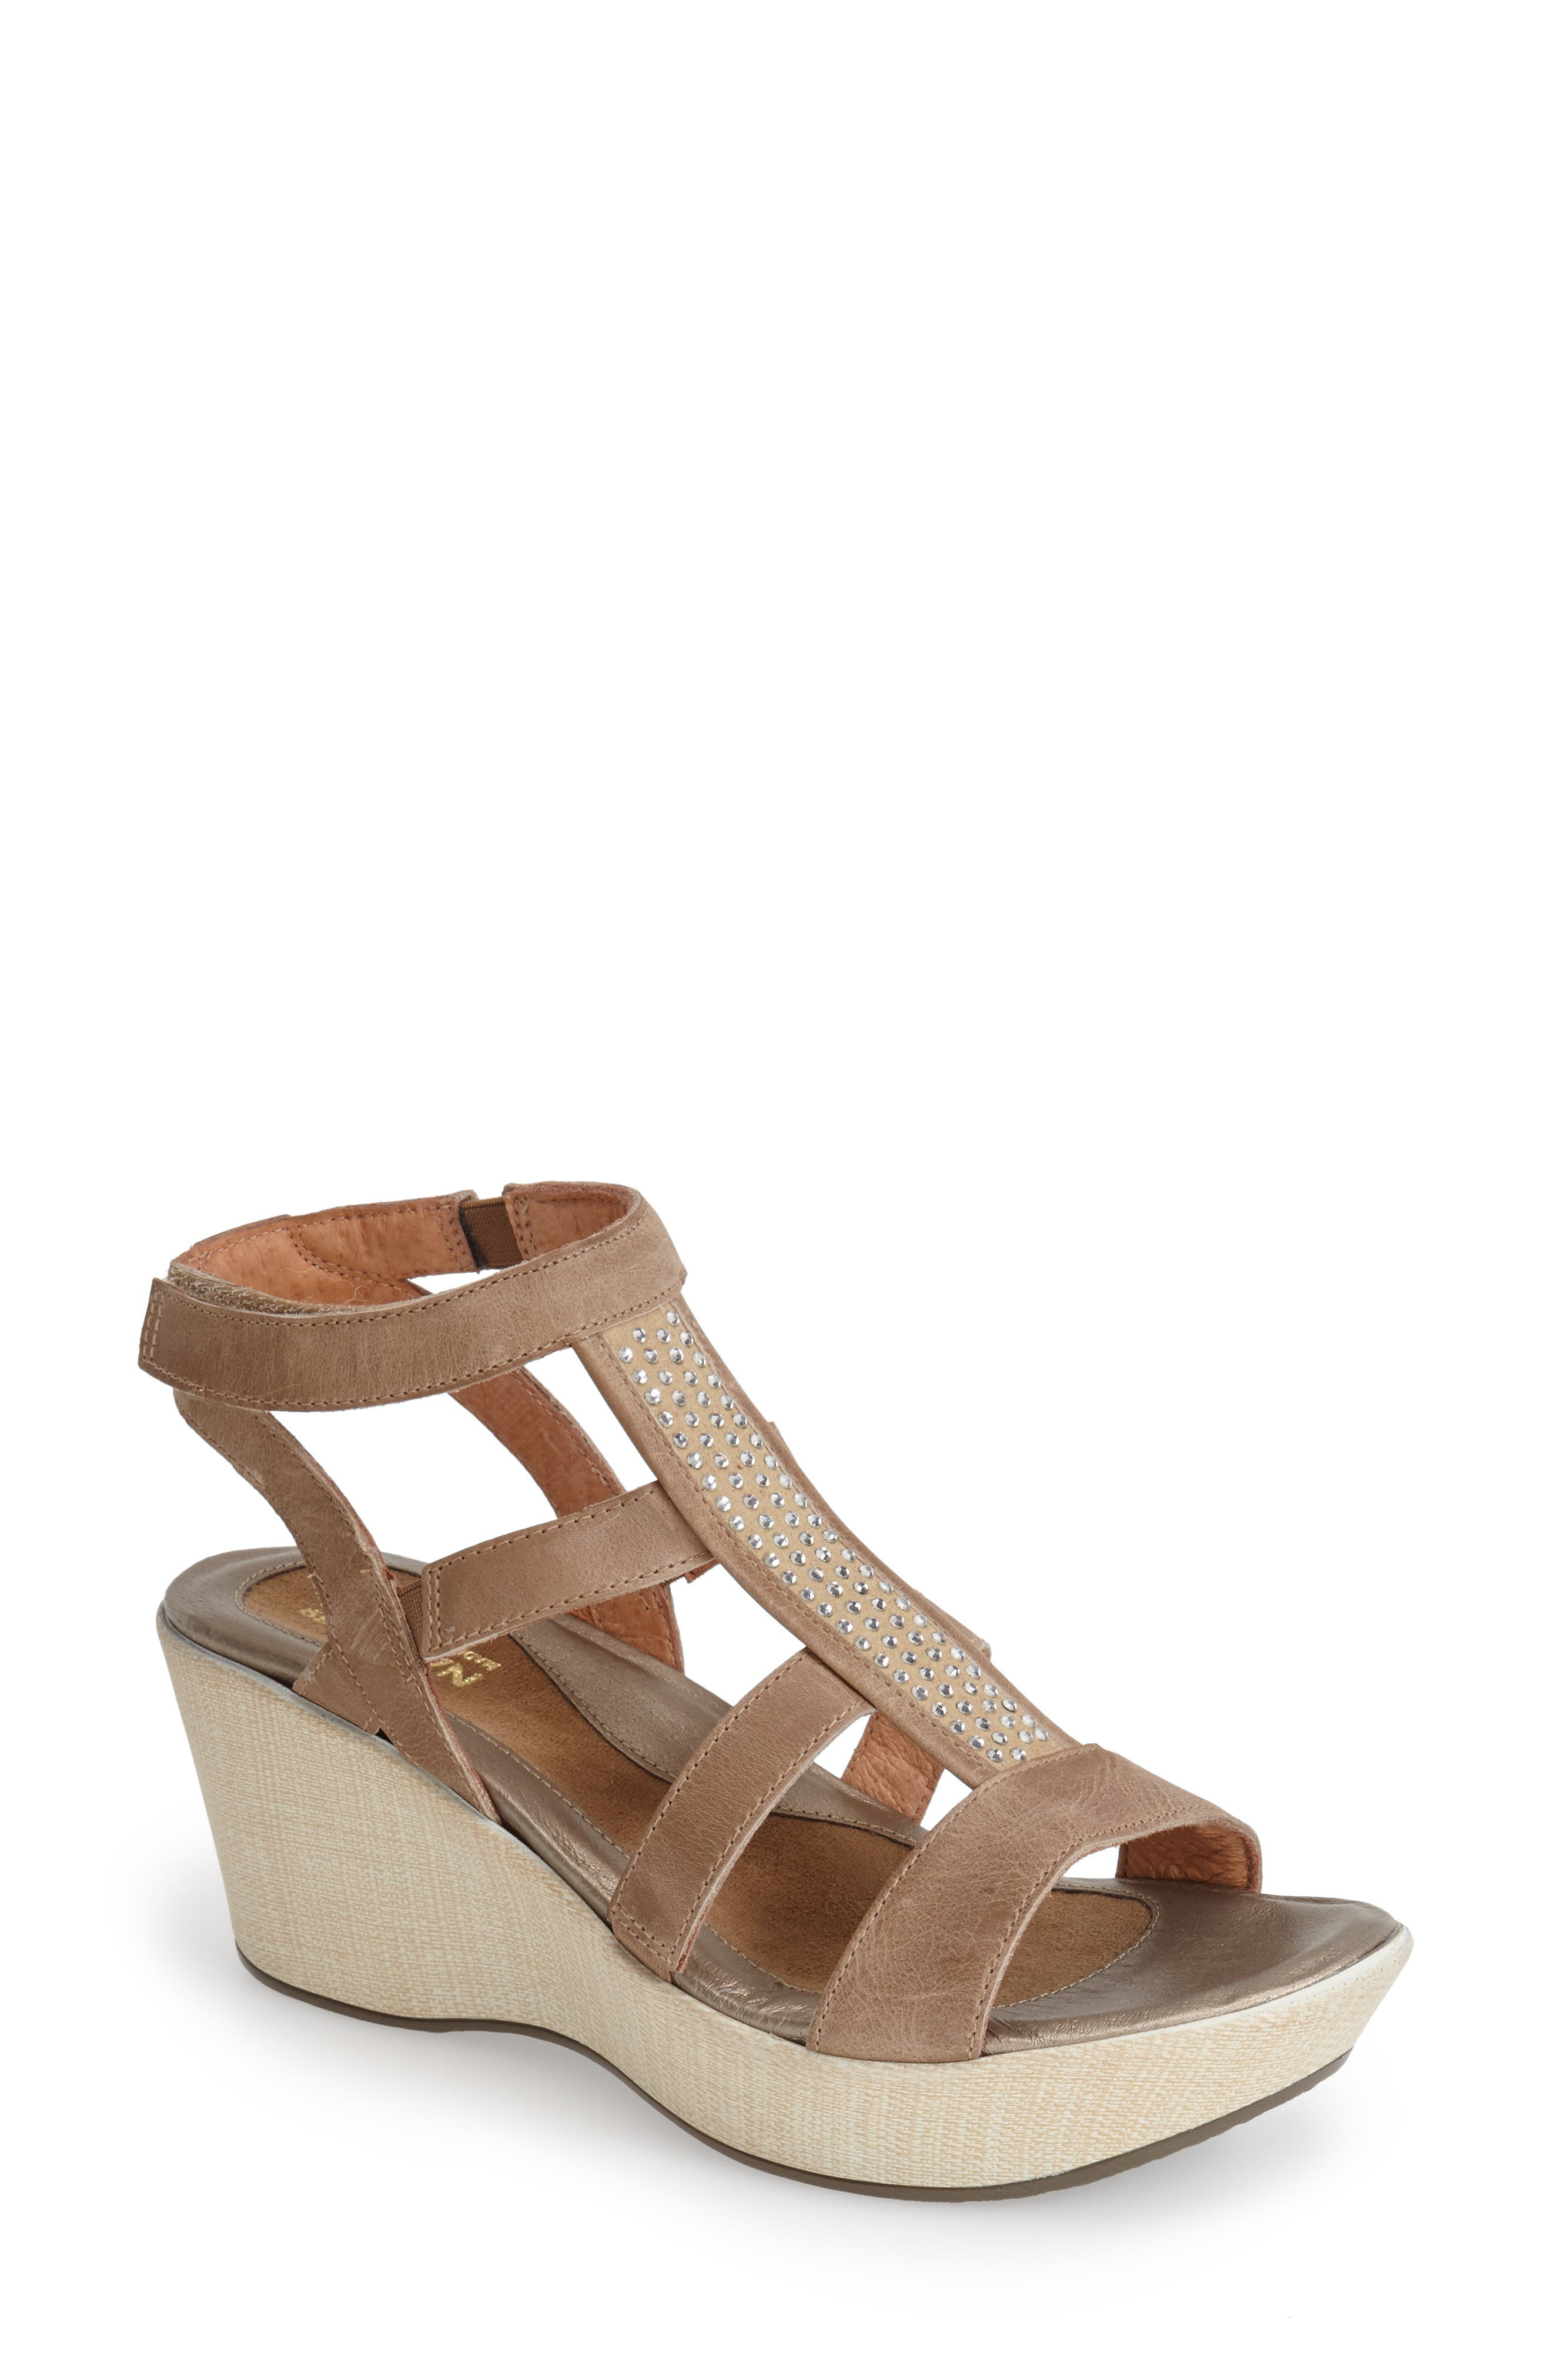 'Mystery' Platform Wedge Sandal,                             Alternate thumbnail 7, color,